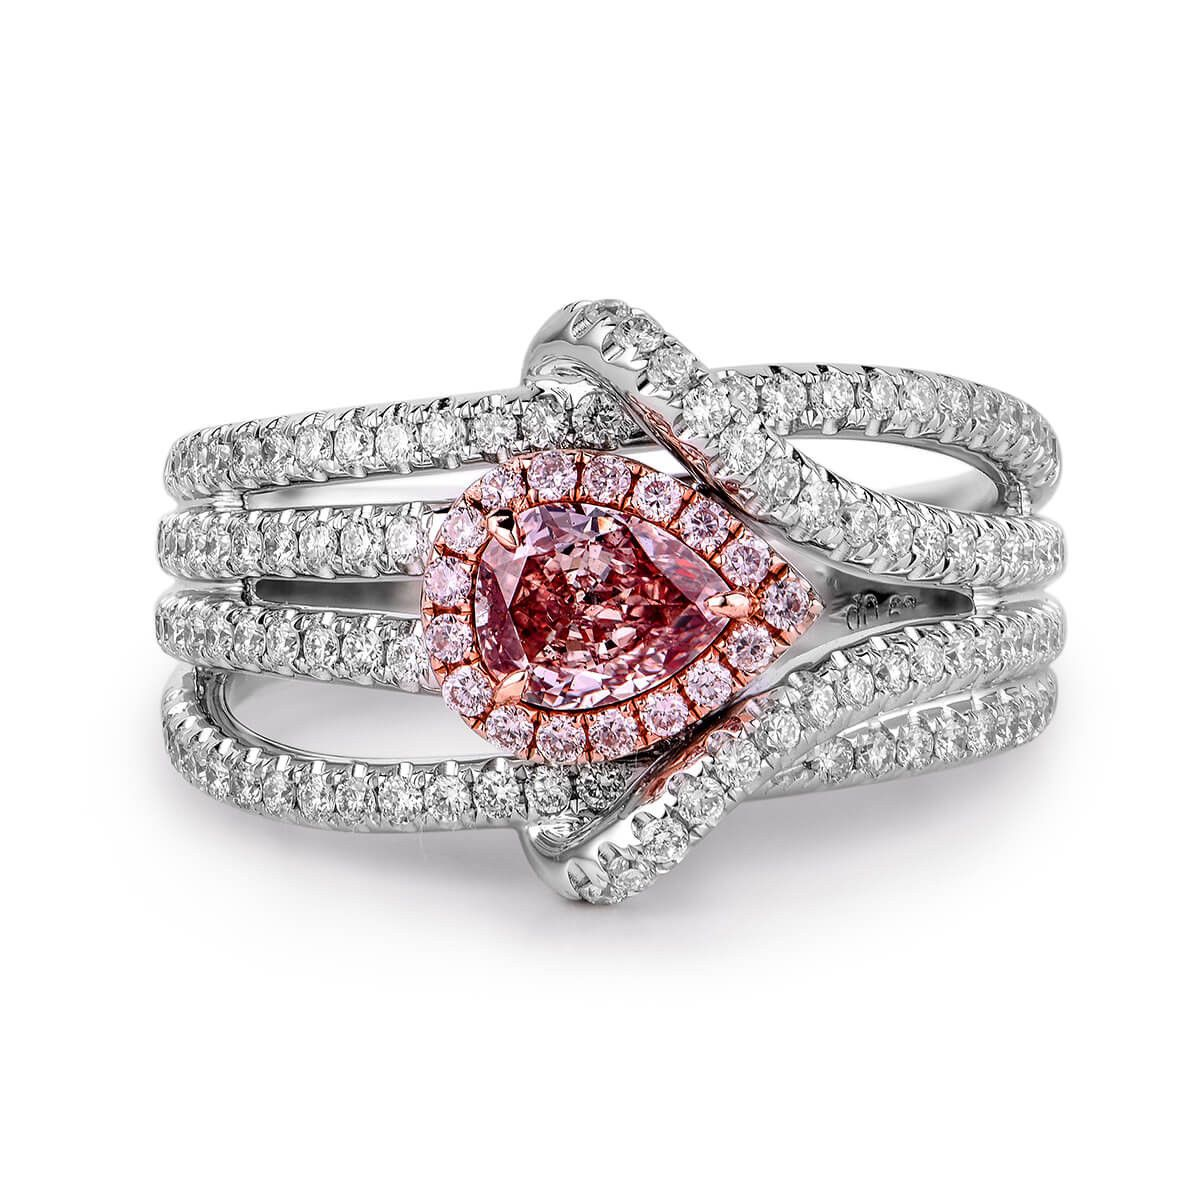 trend rings engagement market jewellery platinum ring your pink oscar las editorial heyman jck article on no vegas sapphire